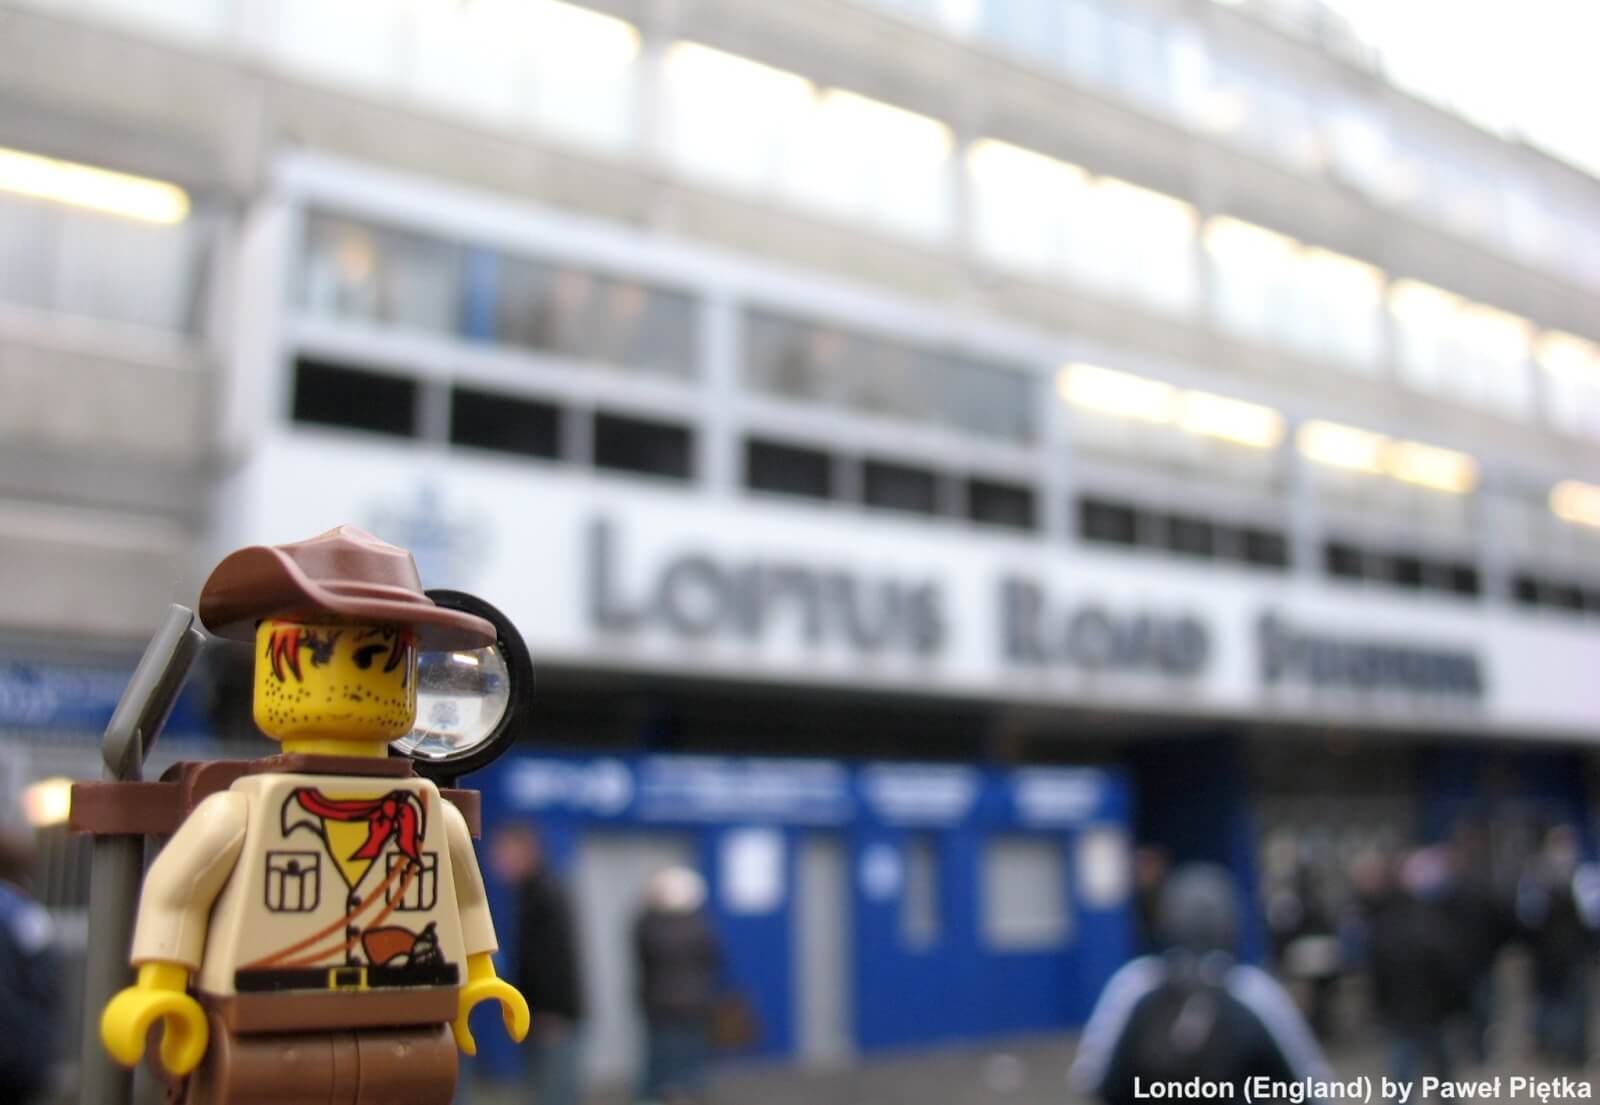 London (England) - QPR Loftus Road